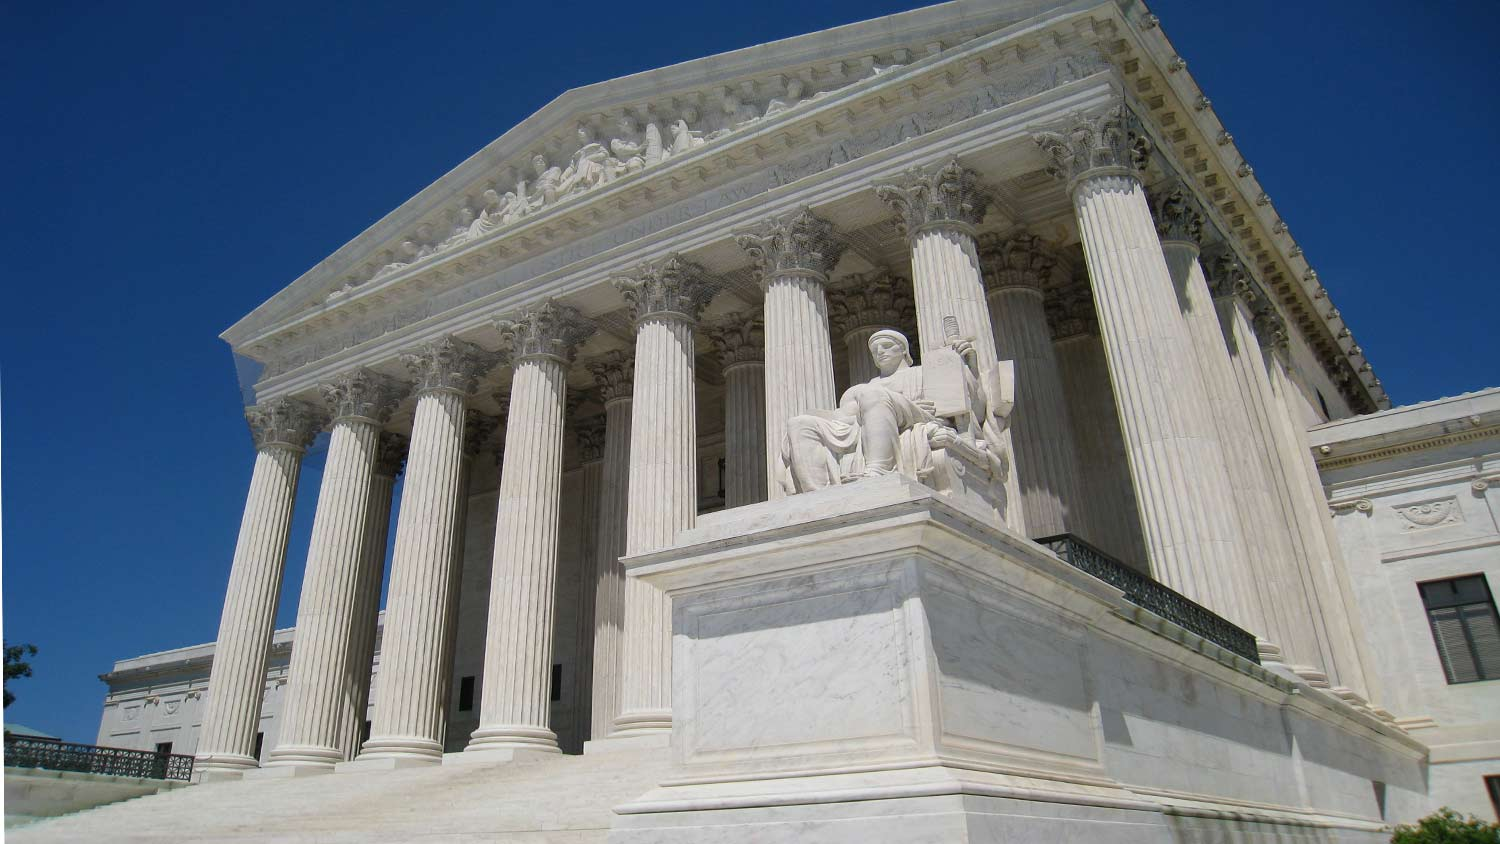 Over 60 Organizations Have Asked the Supreme Court to Hear Case on Donor Privacy